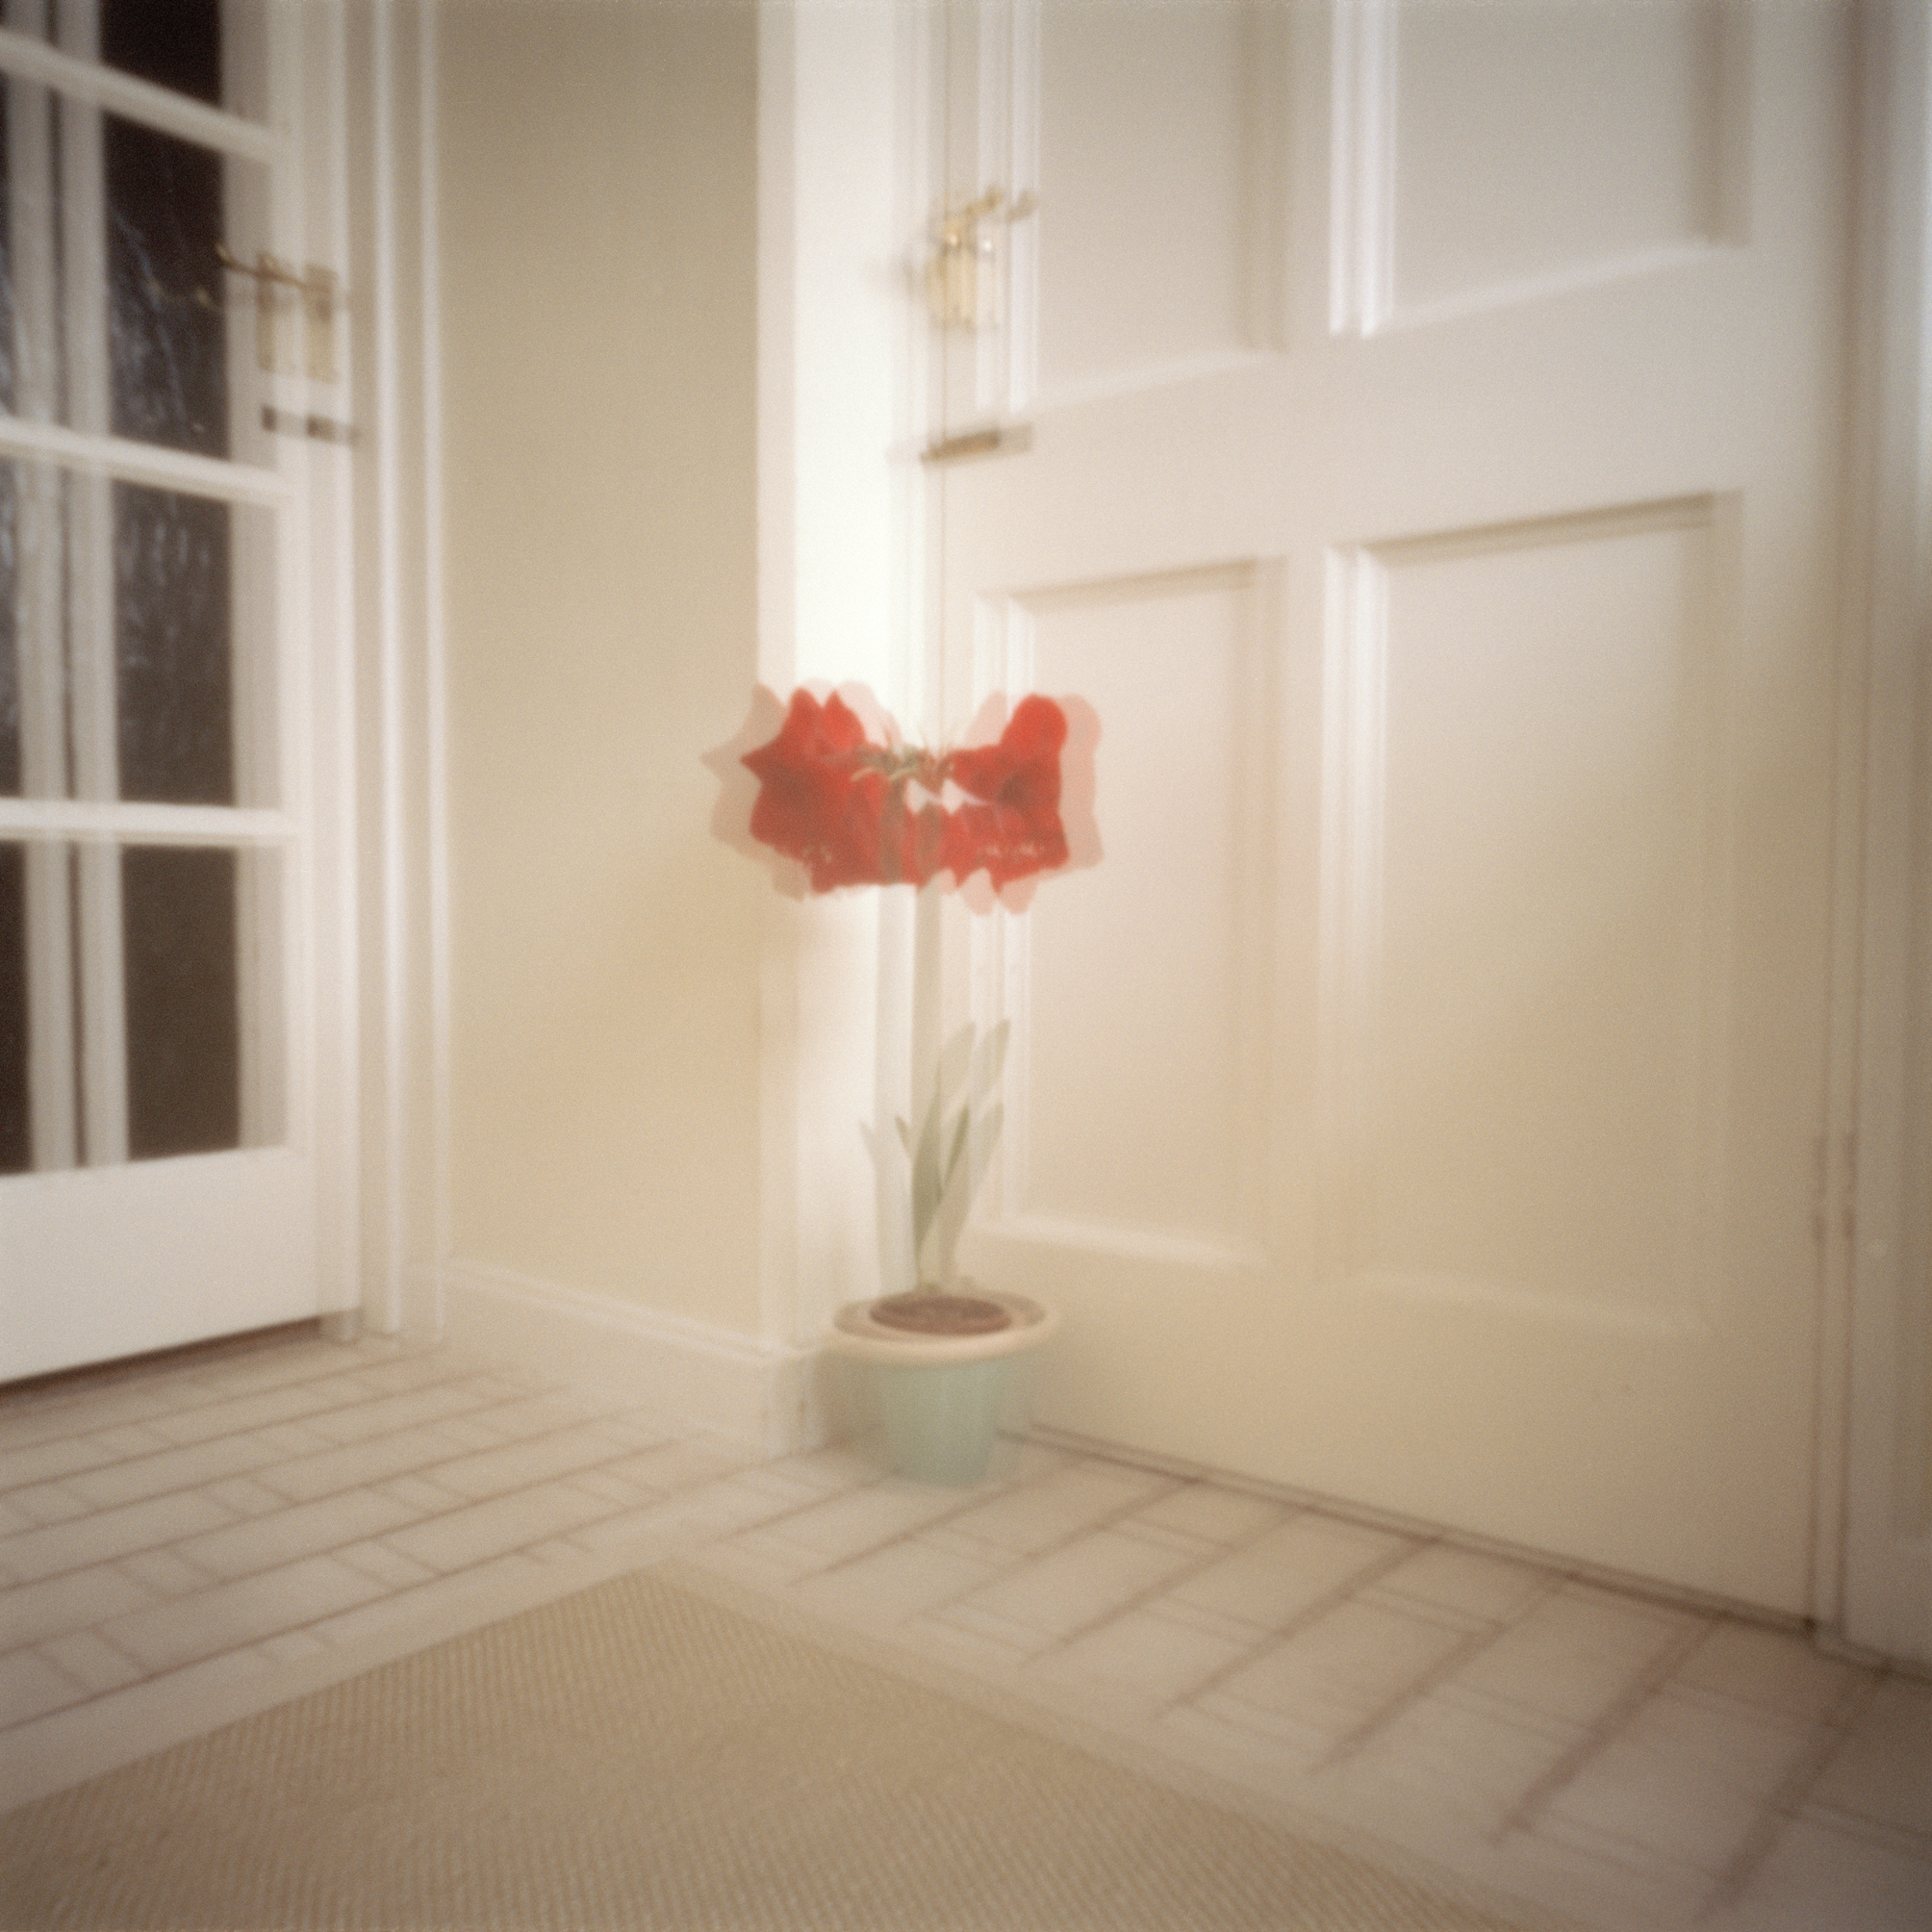 shoe room with red flower.jpg